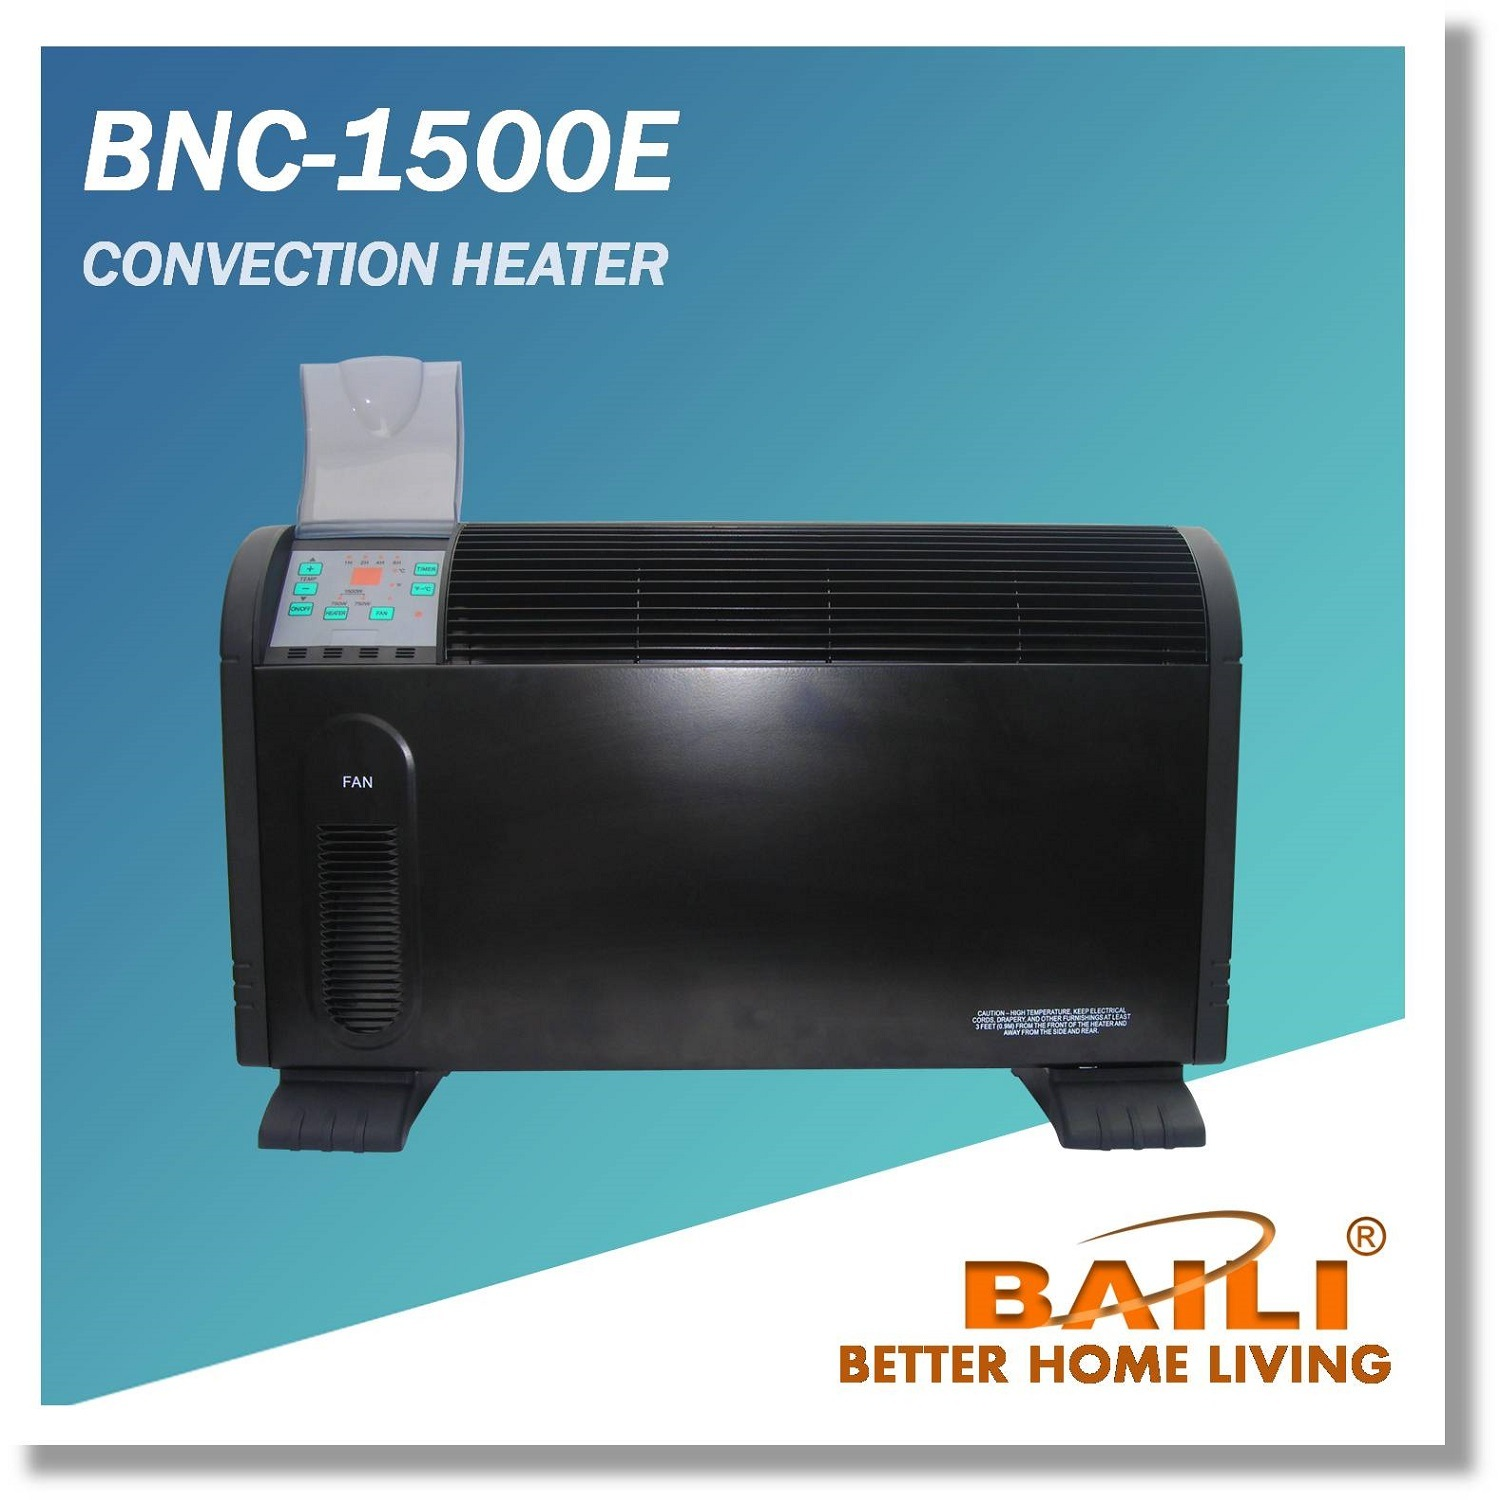 Convection Heater with Electronic Touch